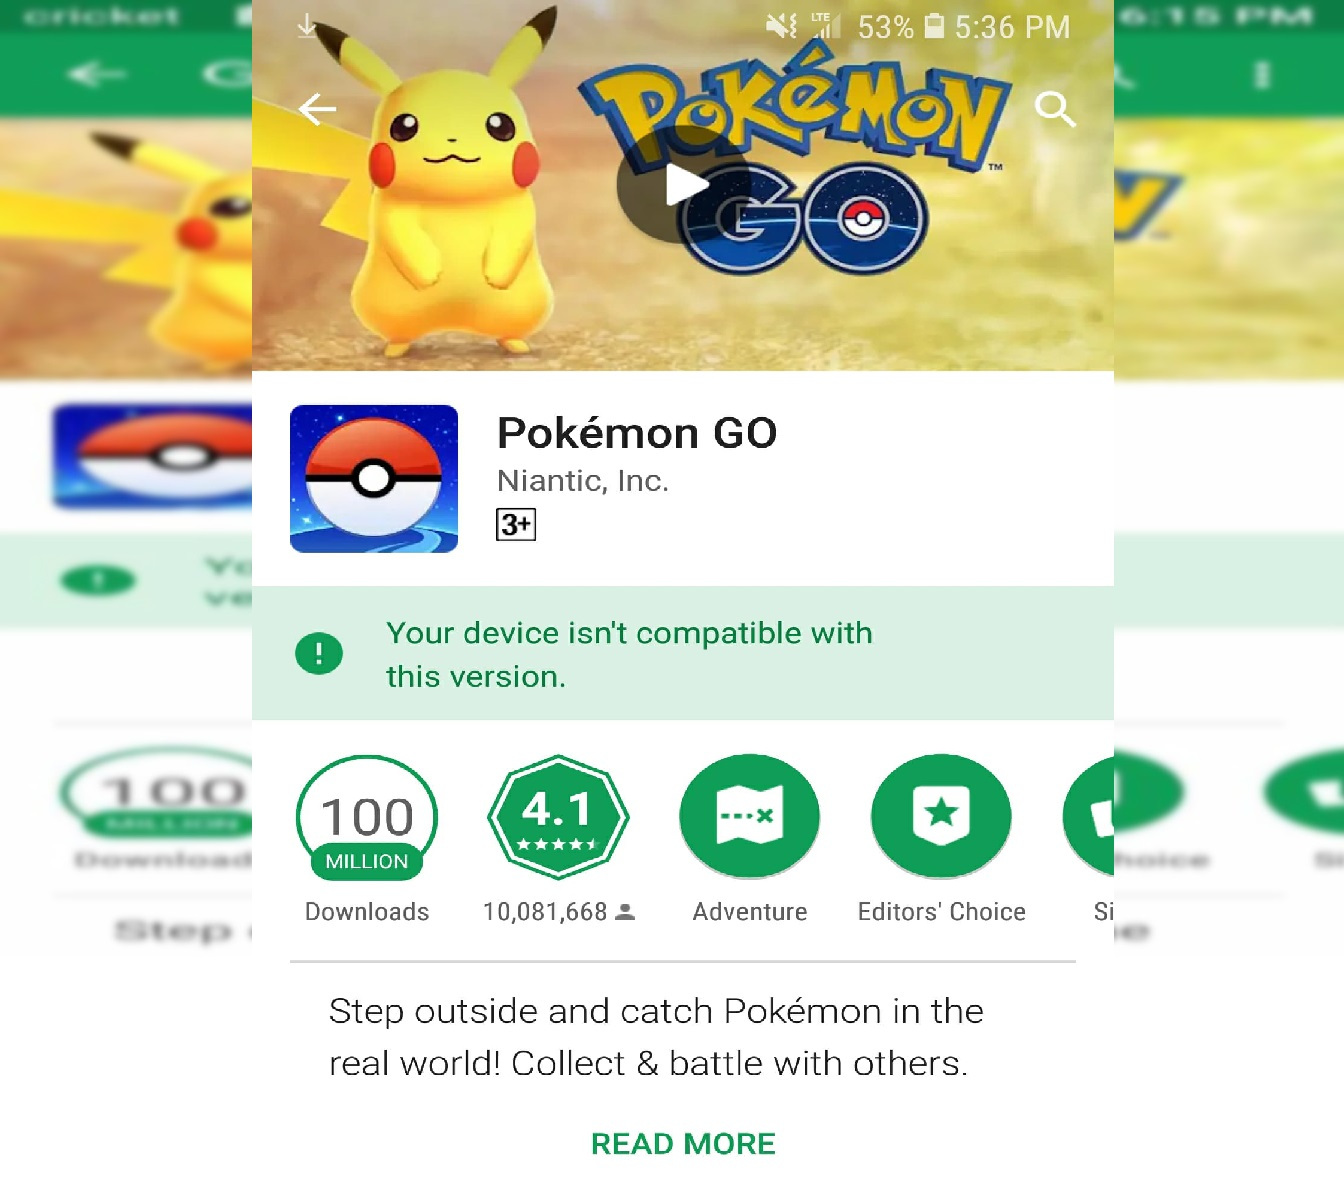 Photo of Pokemon Go Device Isn't Compatible with this Update Note, Here is How to Fix it